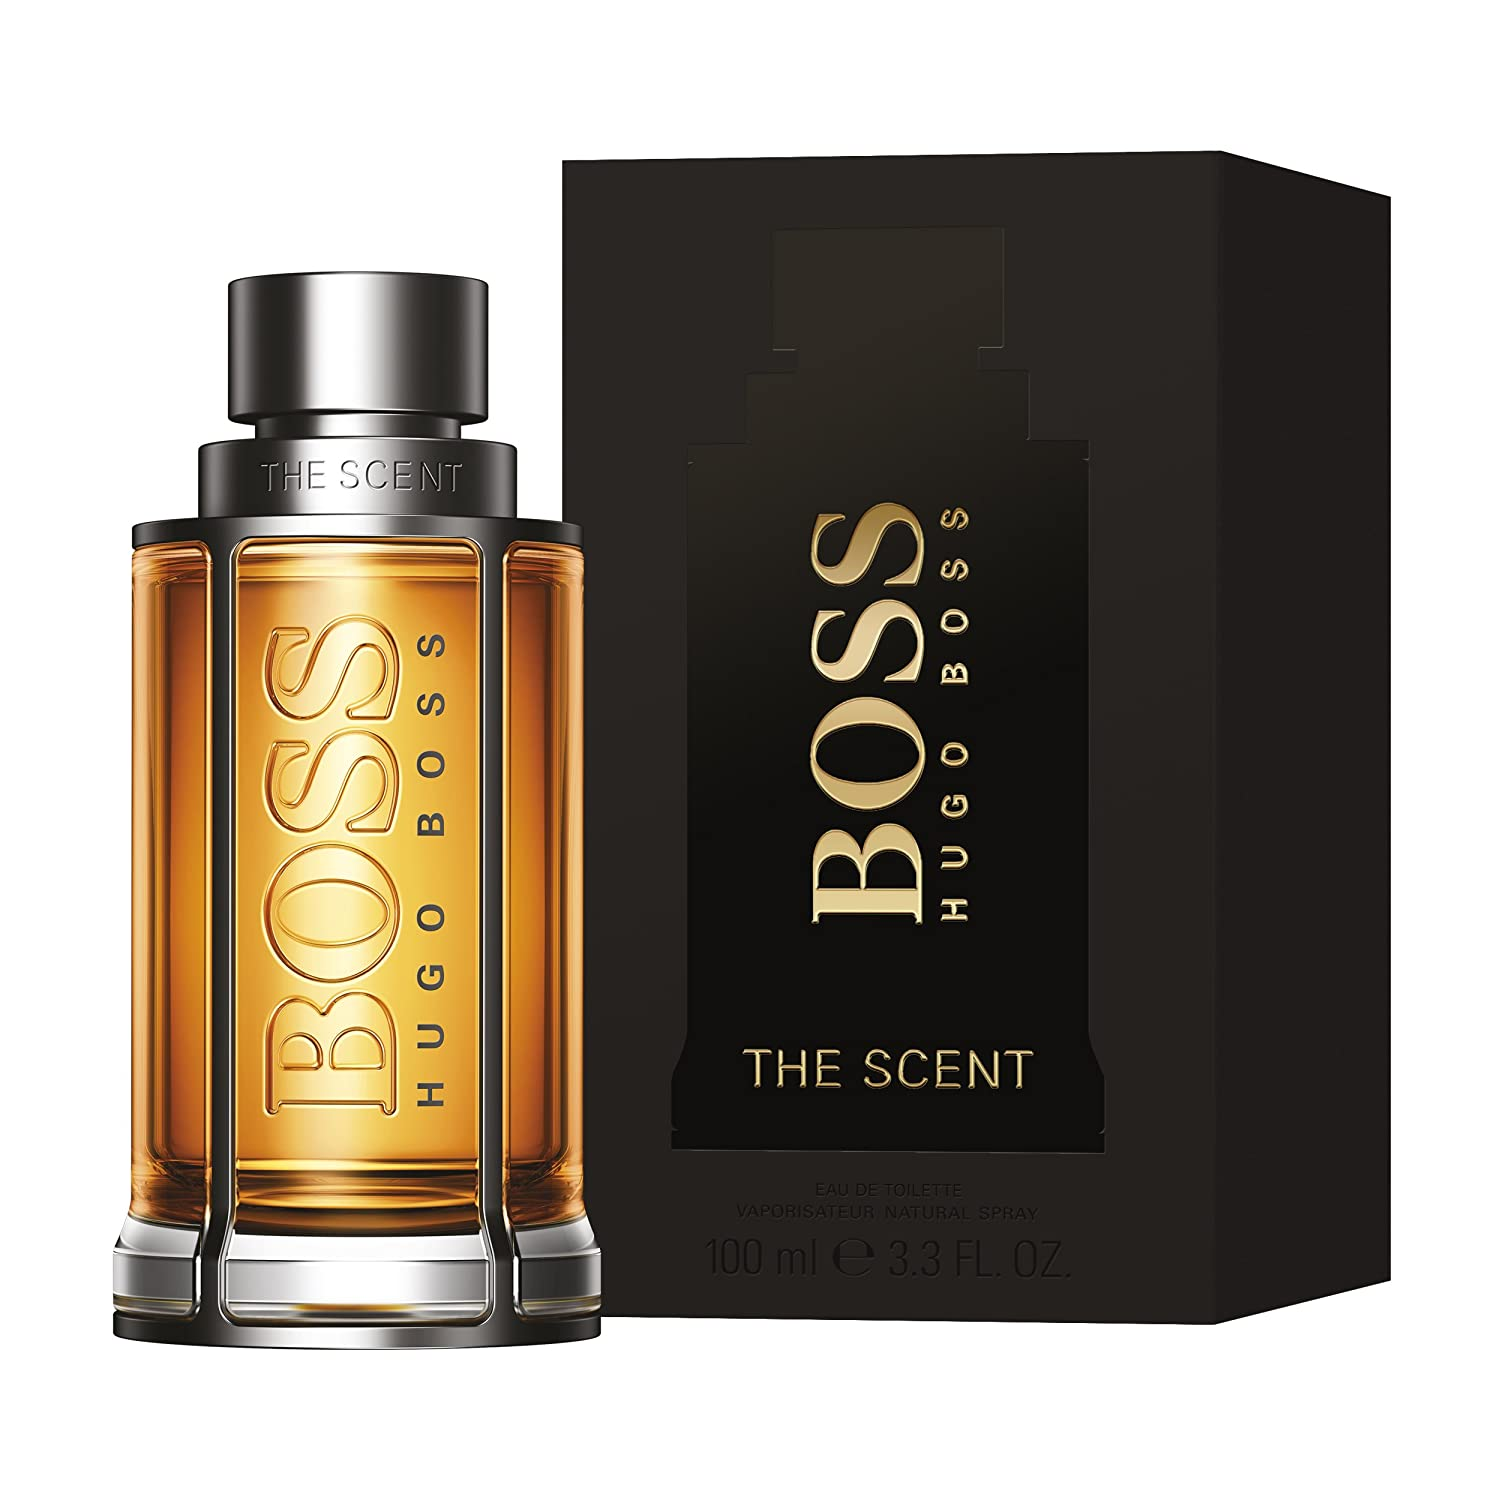 63f89b04185 Hugo Boss THE SCENT Eau de Toilette